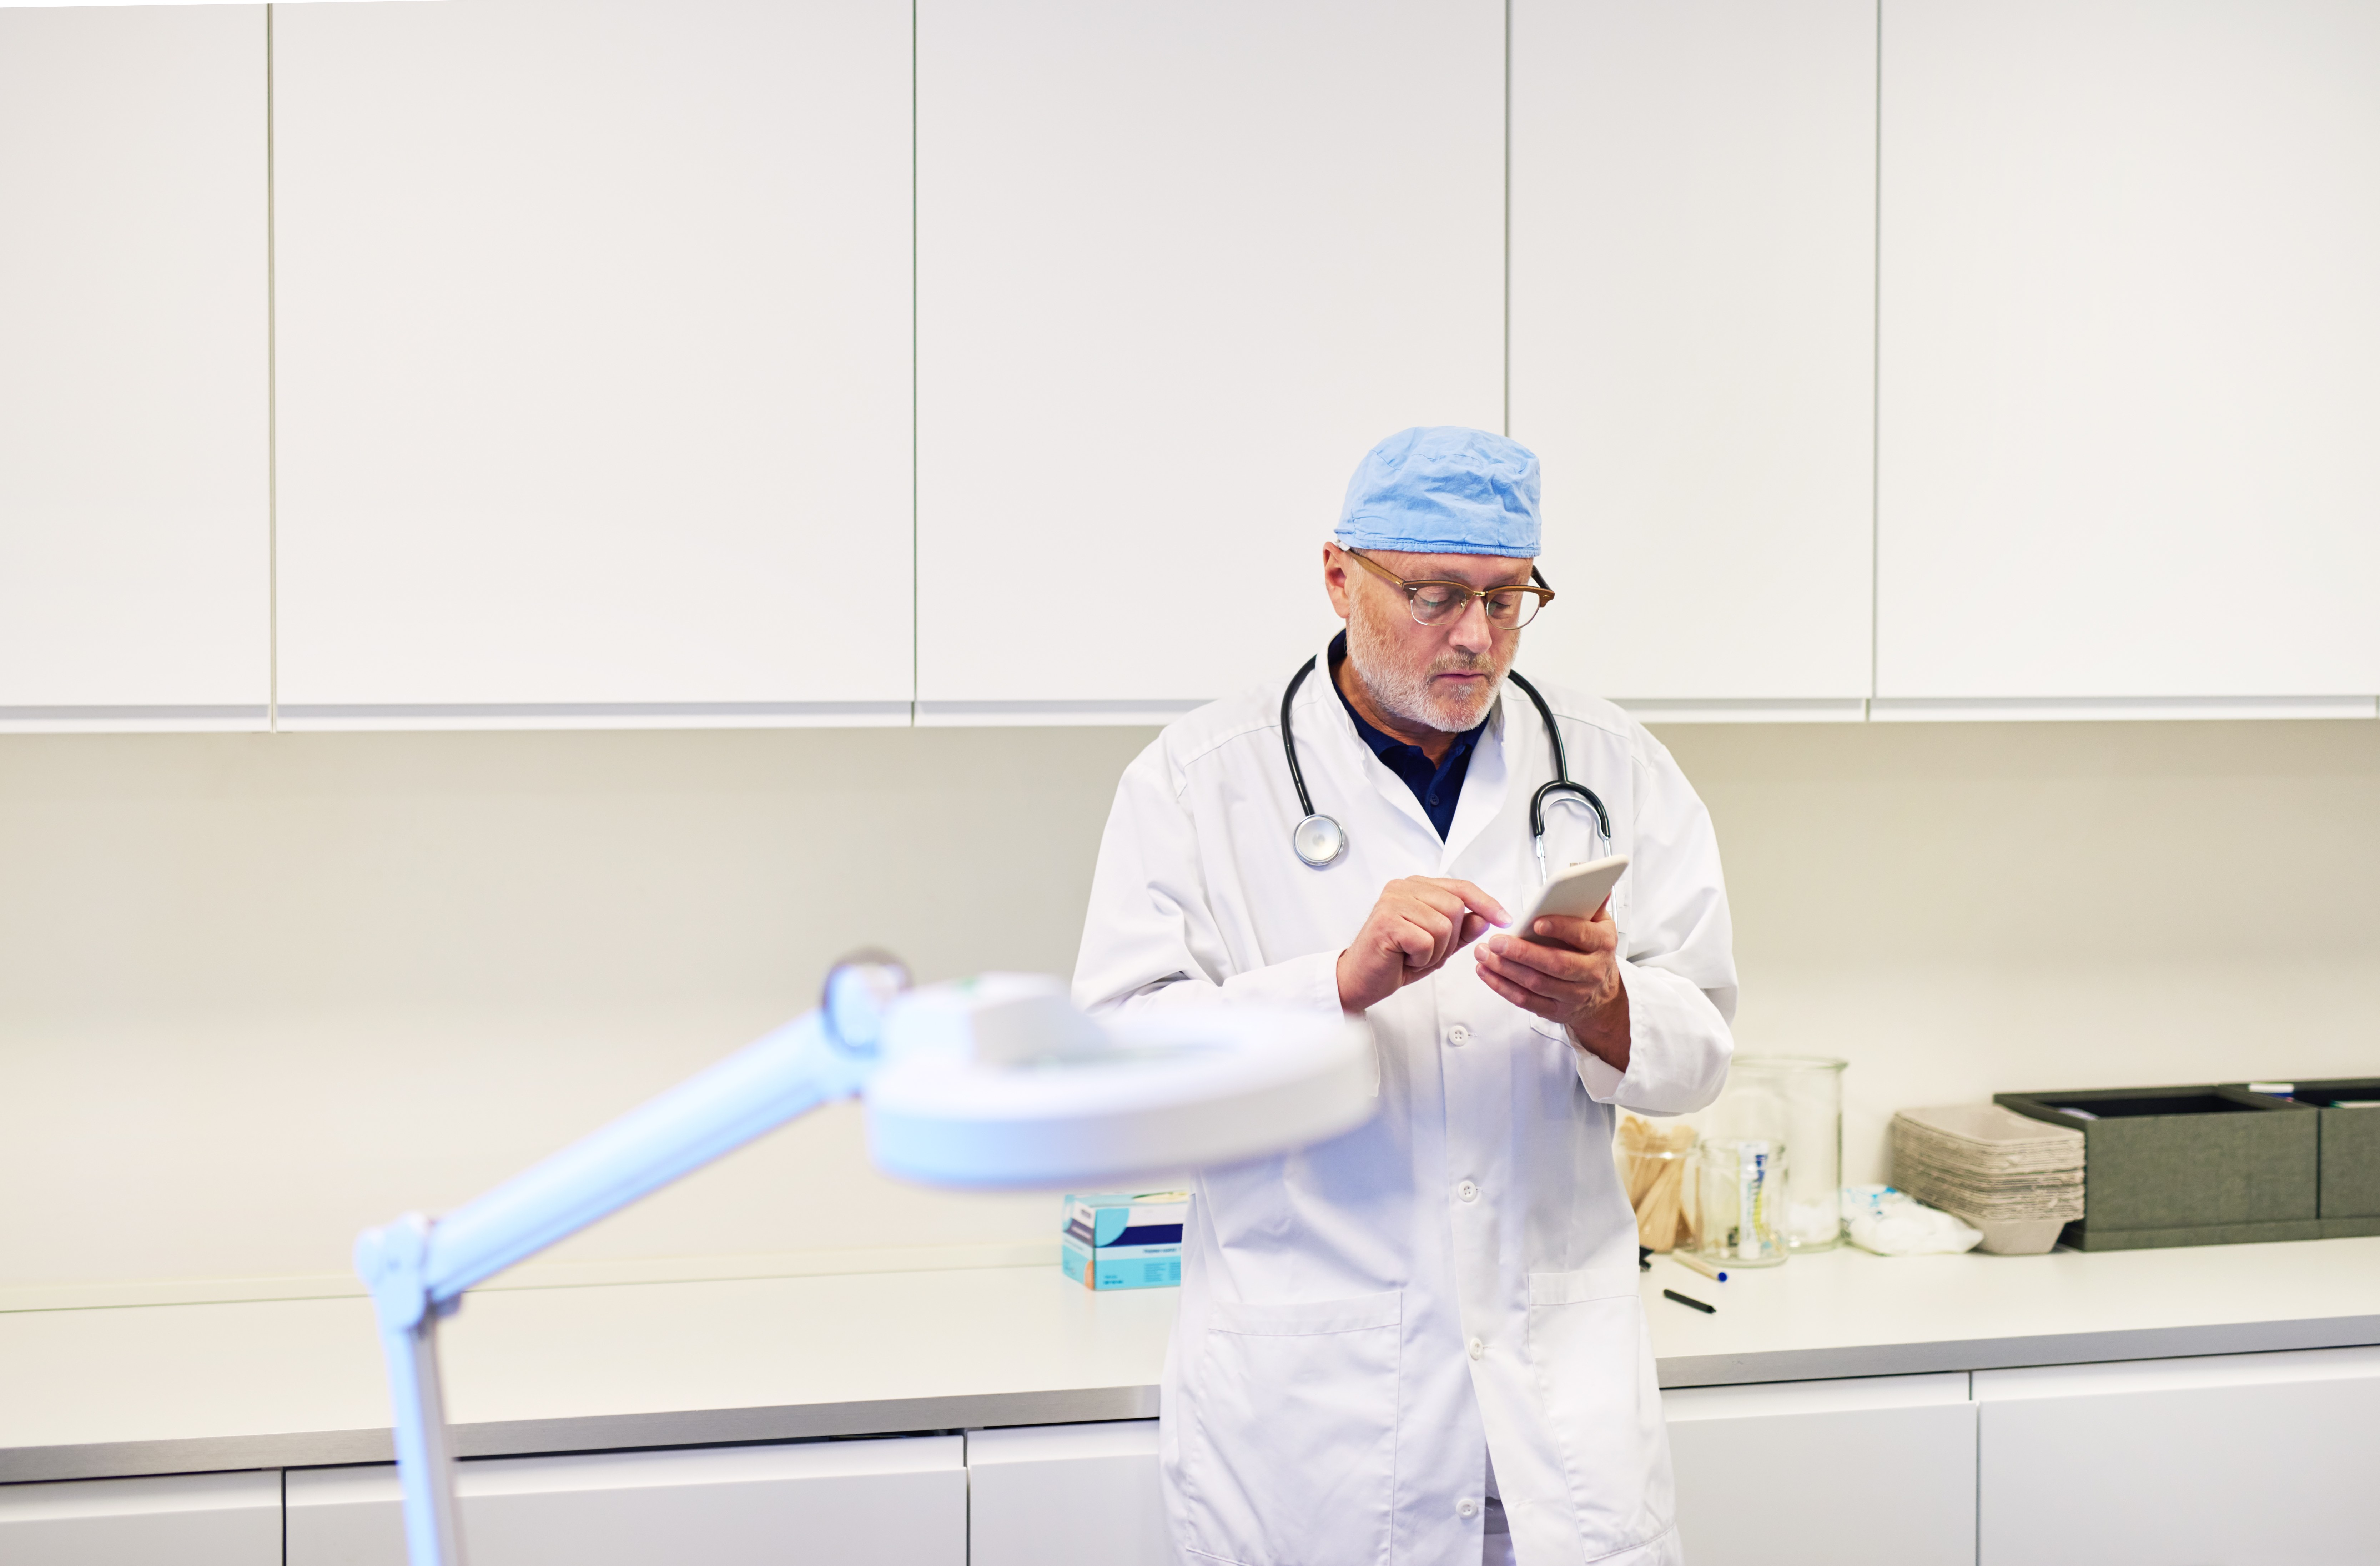 Why Traditional Dictation Software For Medical Professionals Misses The Mark